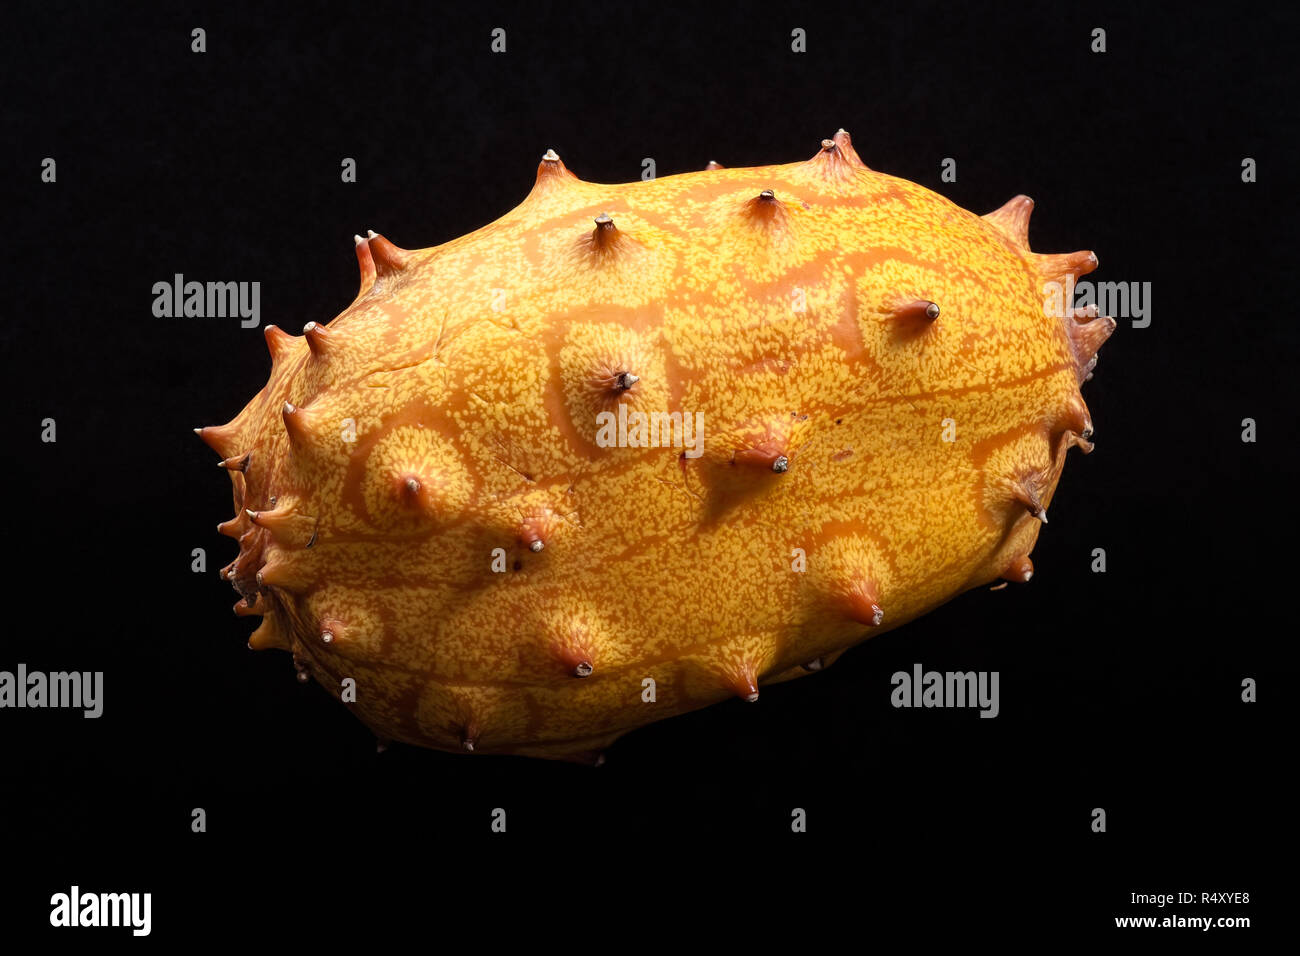 An uncut kiwano (horned melon) isolated on a black background. - Stock Image